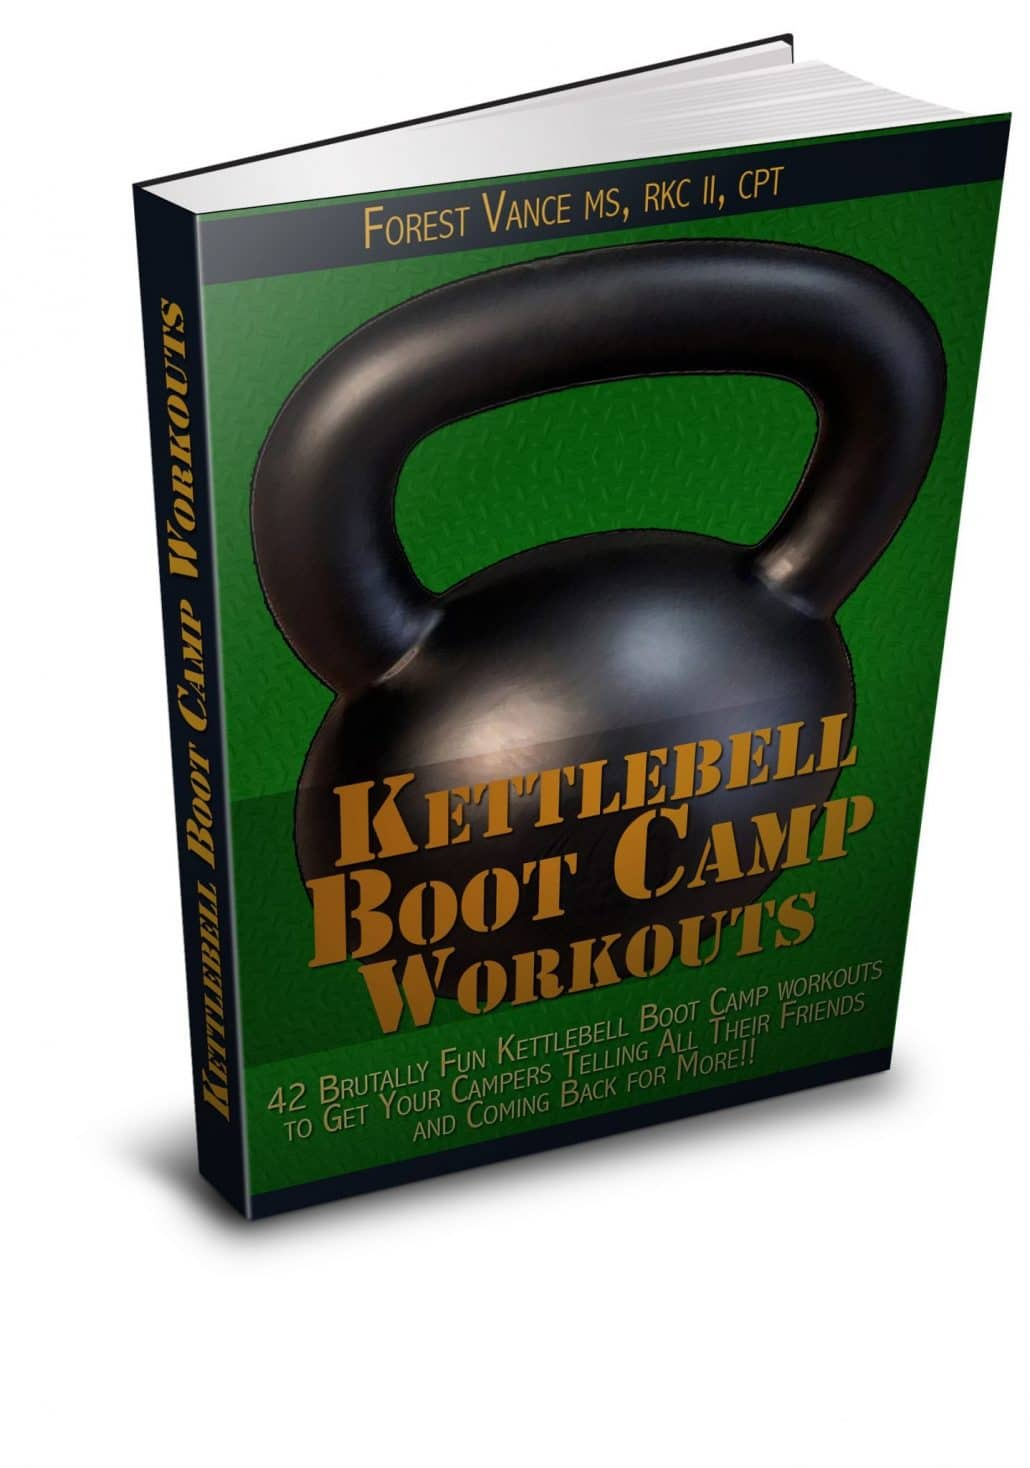 Kettlebell-Boot-Camp-Workouts-with-Forsest-Vance